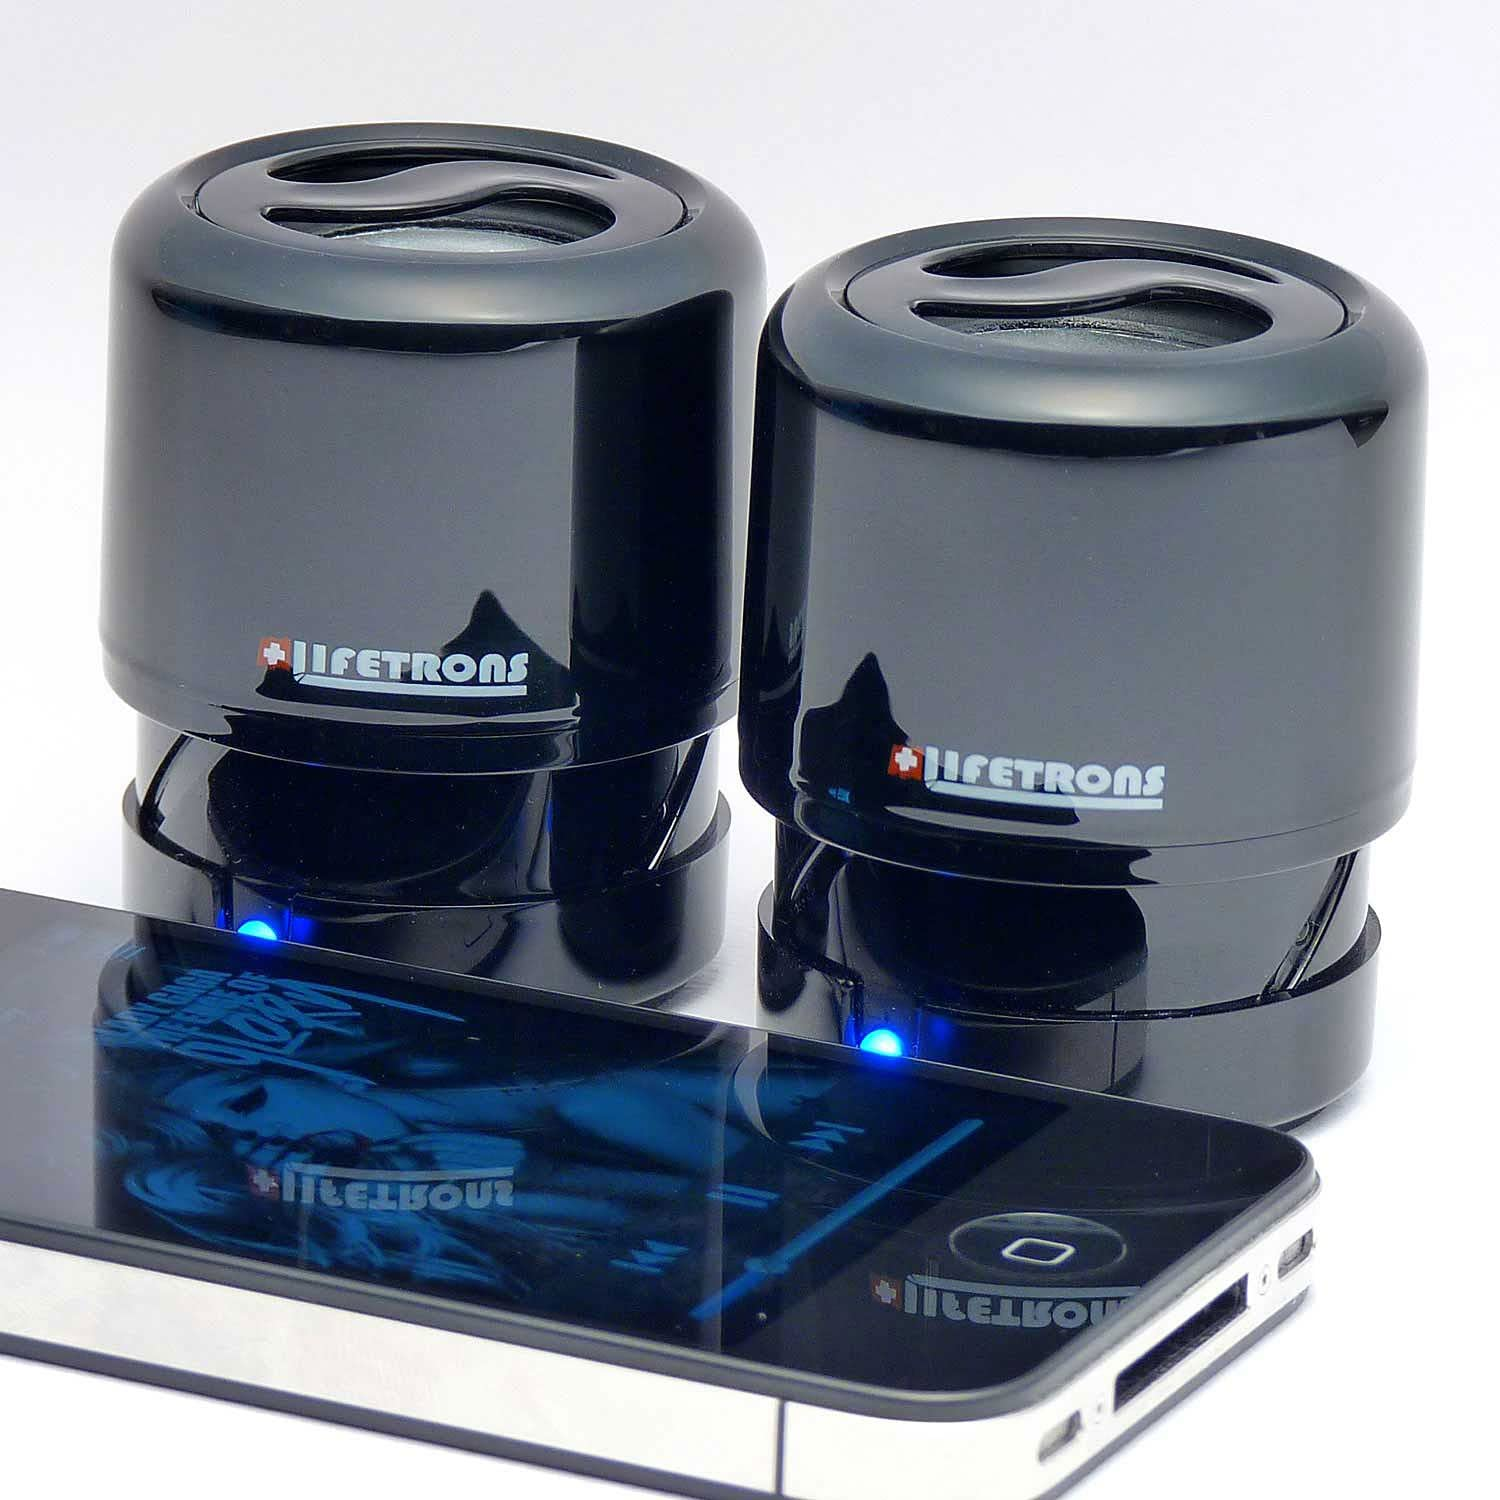 Lifetrons Drumbass Ii Extendable Rechargeable Speaker Black Ivory Stereo Edition - 2071MALL